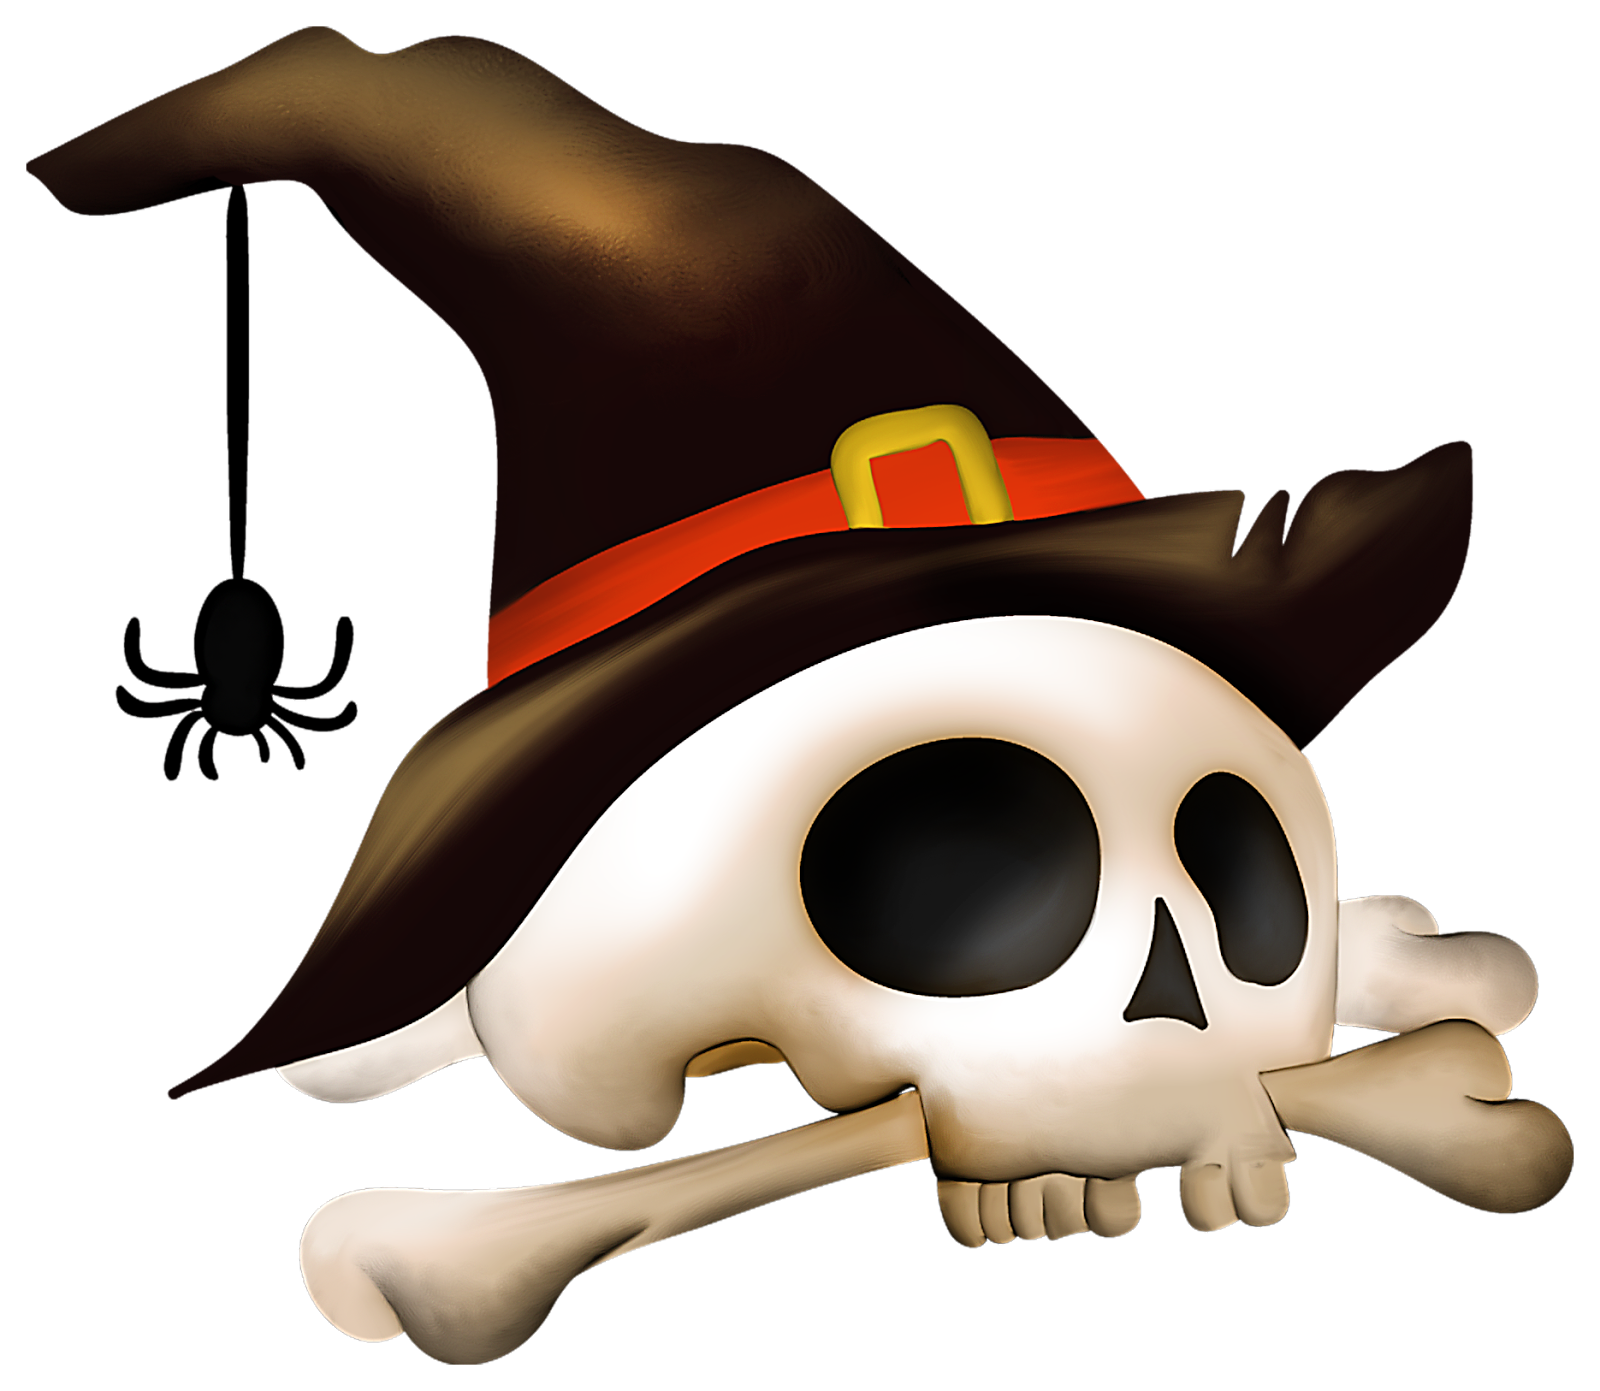 halloween skull png 26476 free icons and png backgrounds sunglasses clip art free images sunglasses clip art no background